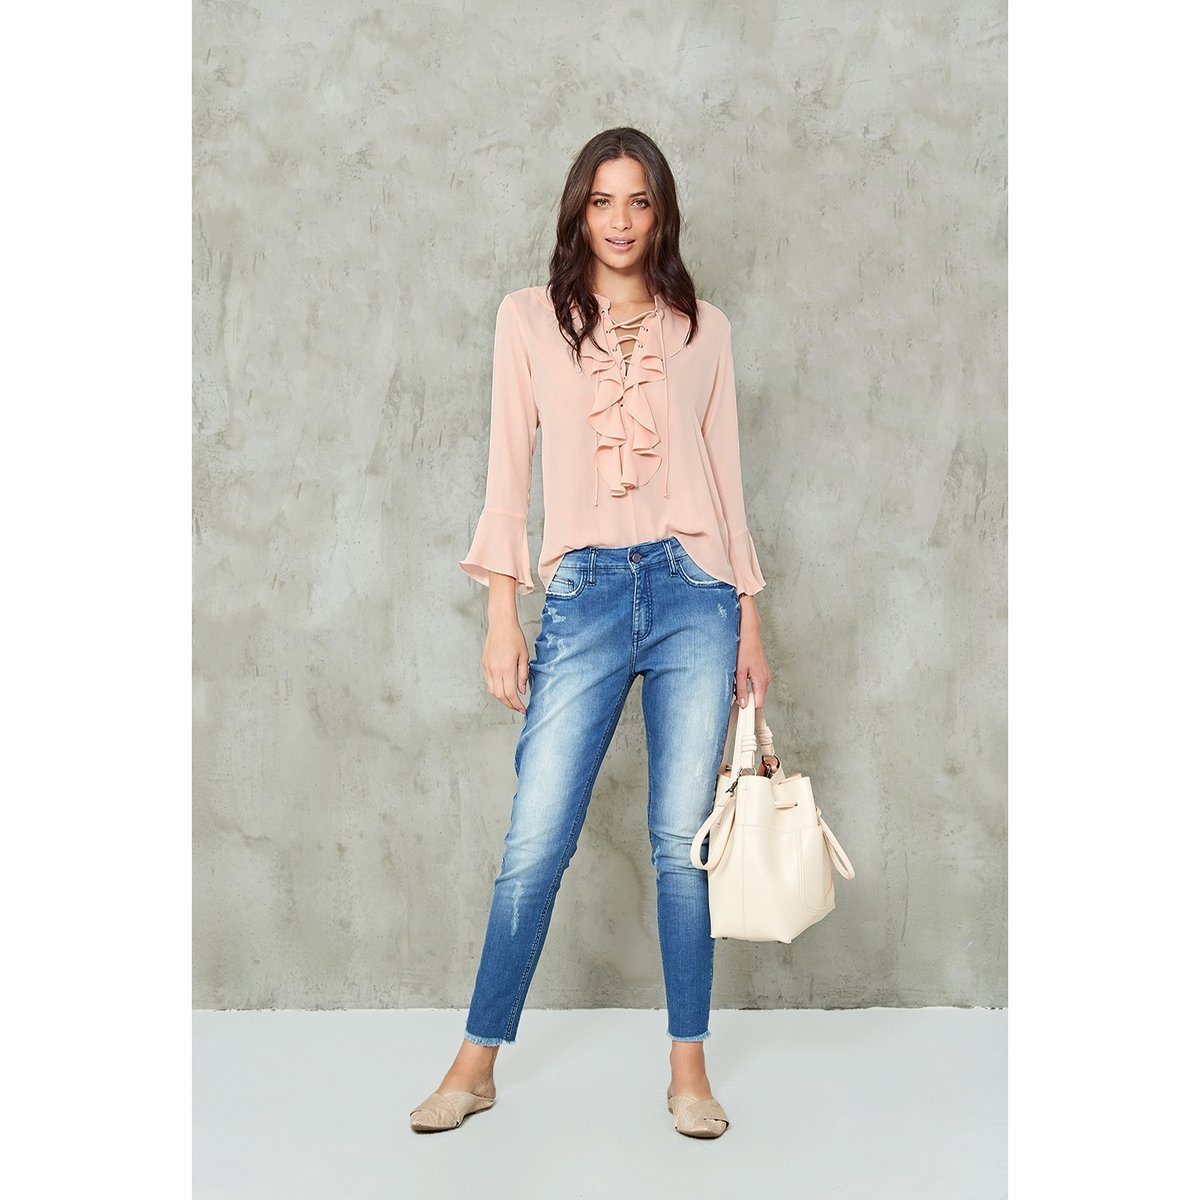 Rosa Babado Rosa Blusa Blusa Blusa Rosa Blusa Babado Babado Rosa Rosa Blusa Babado Blusa Babado px4qBB